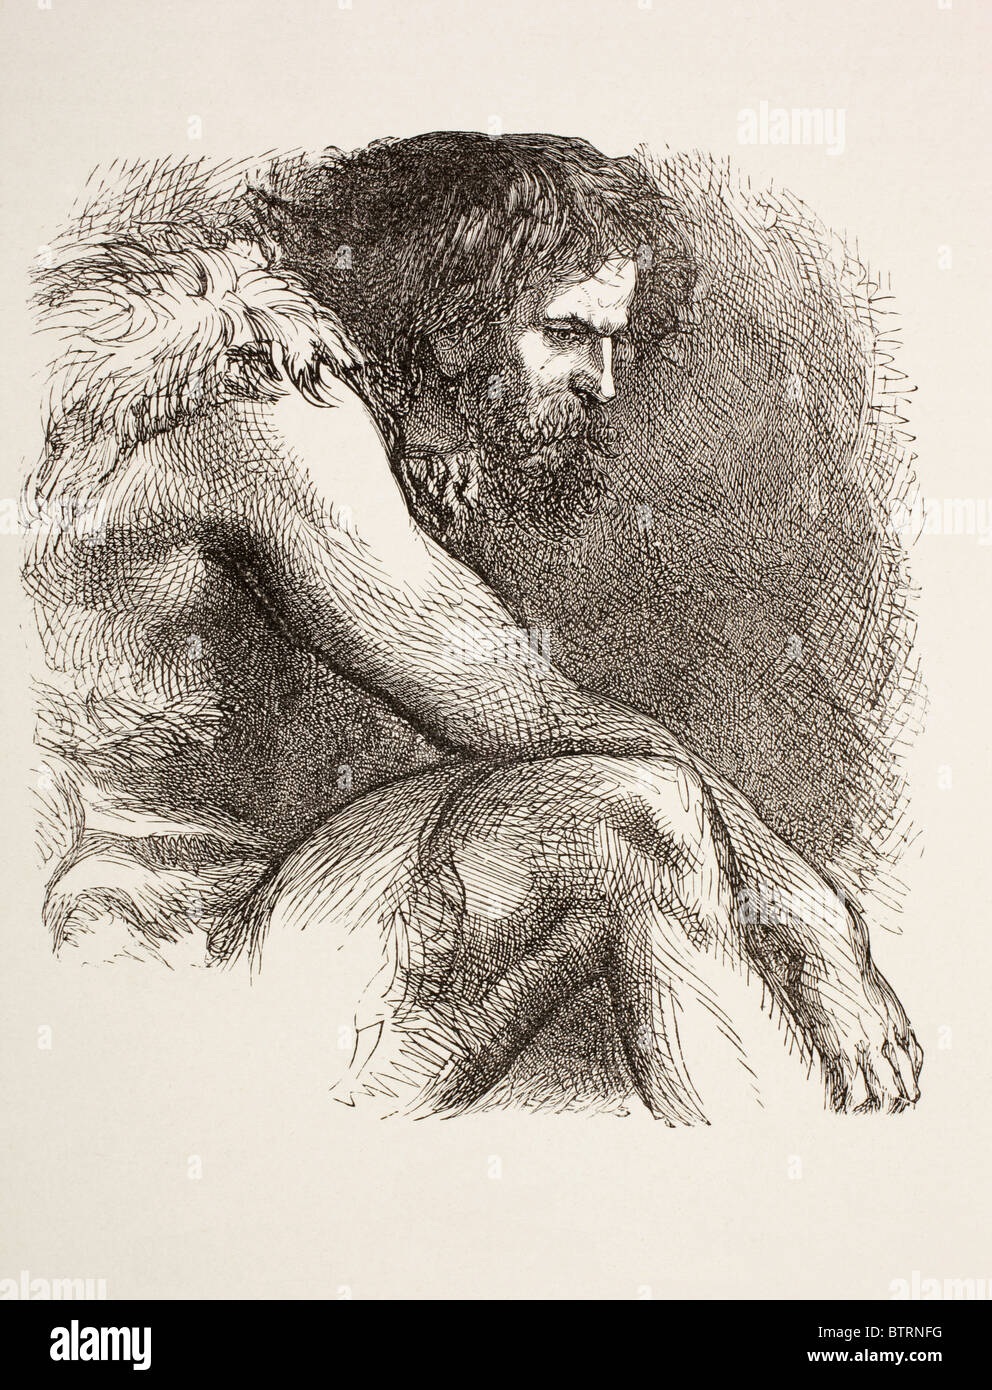 Timon in his cave from Timon of Athens by William Shakespeare. Prehistoric man, bearded and dressed in animal skins. - Stock Image